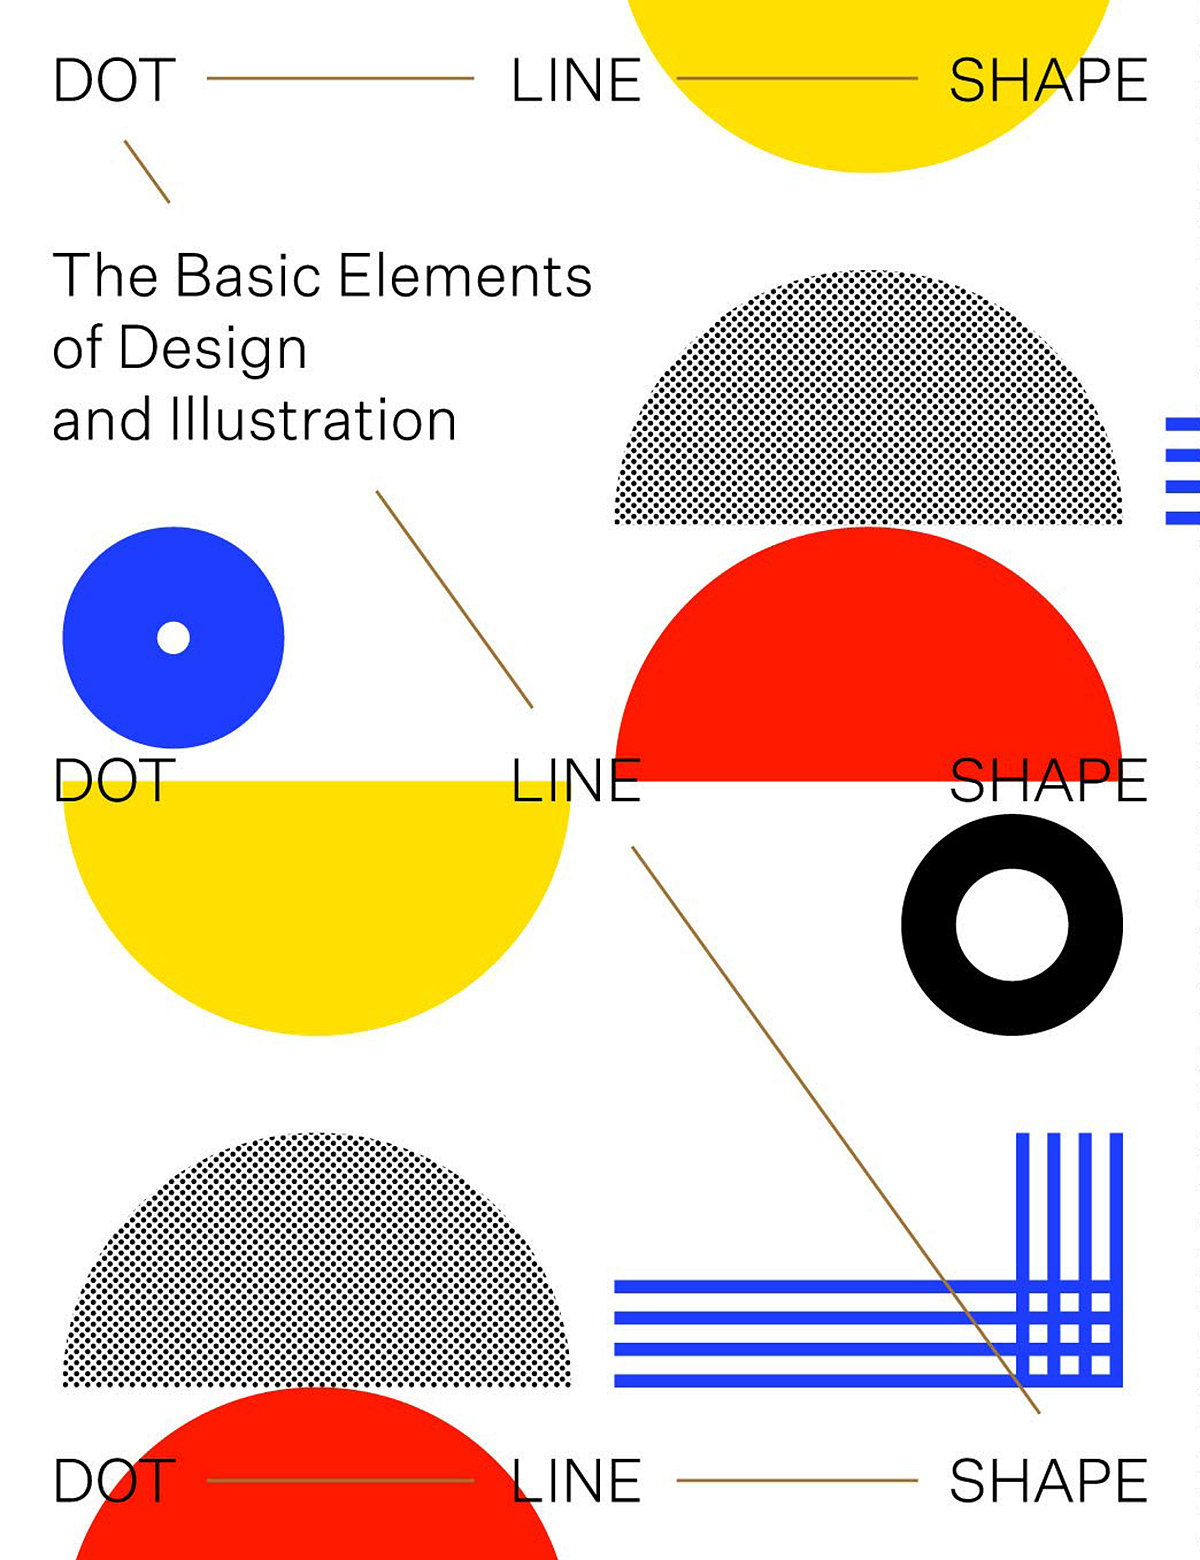 Dot Line Shape - The Basic Elements of Design and Illustration